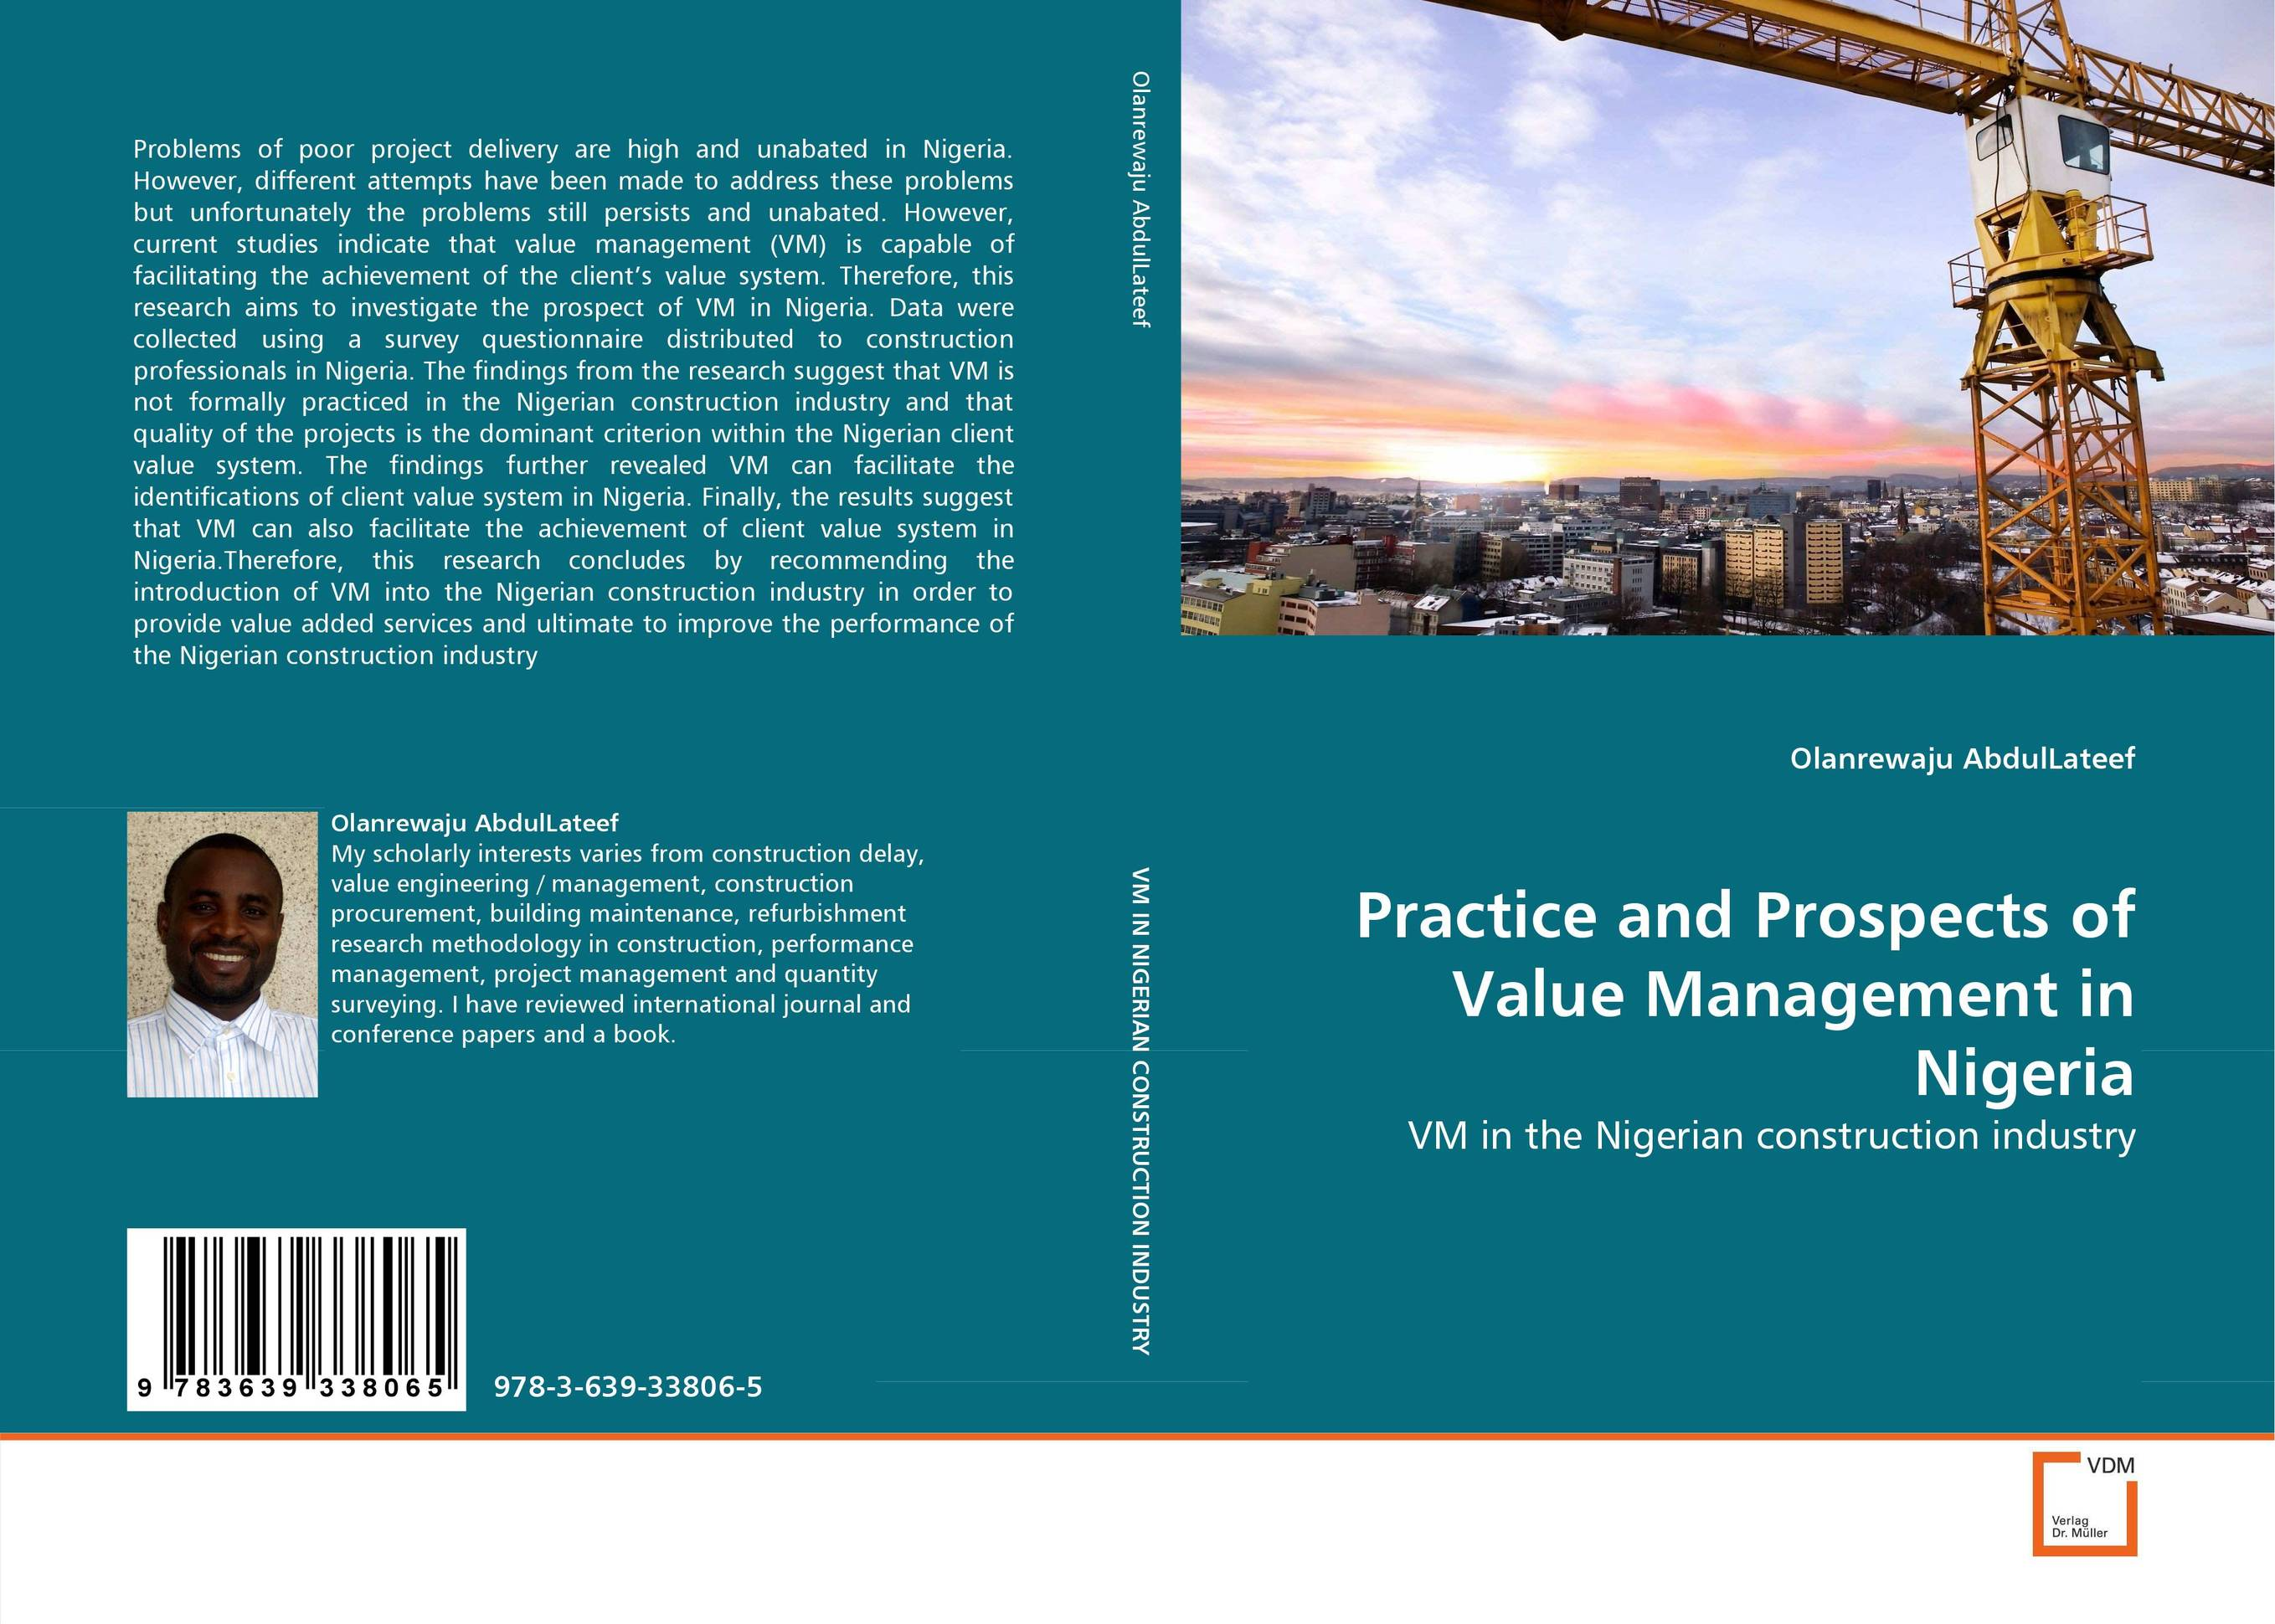 Practice and Prospects of Value Management in Nigeria kitcyo588750pac103637 value kit crayola pip squeaks telescoping marker tower cyo588750 and pacon riverside construction paper pac103637